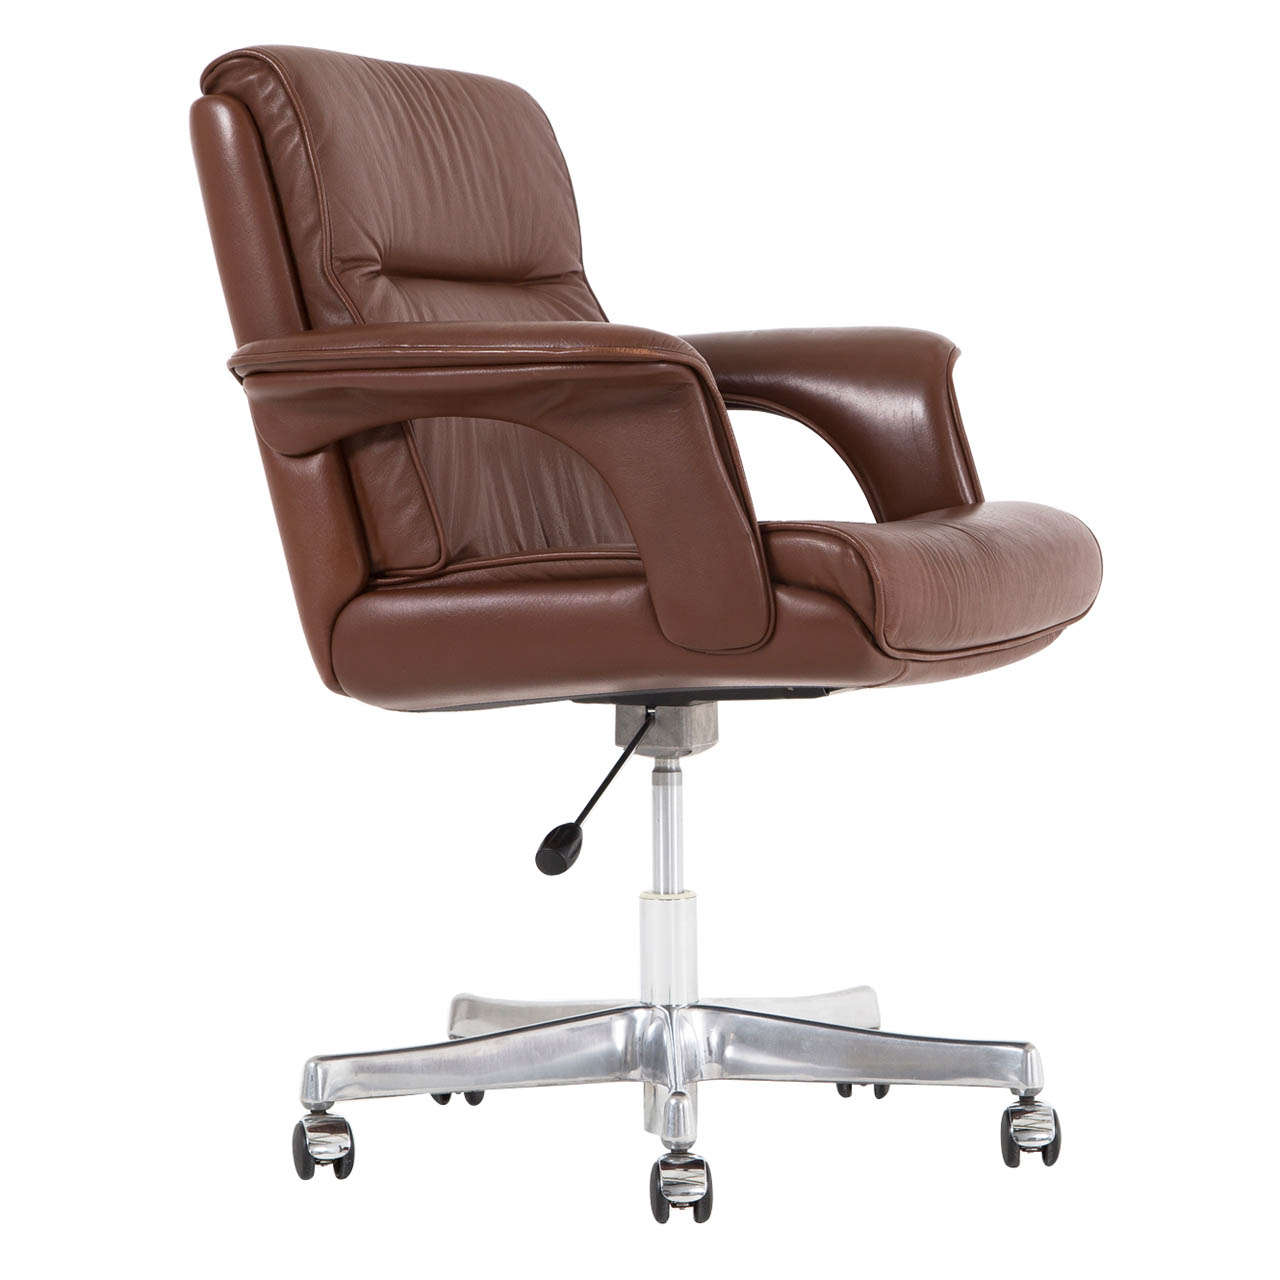 office chair sale dorm room executive conference desk in brown